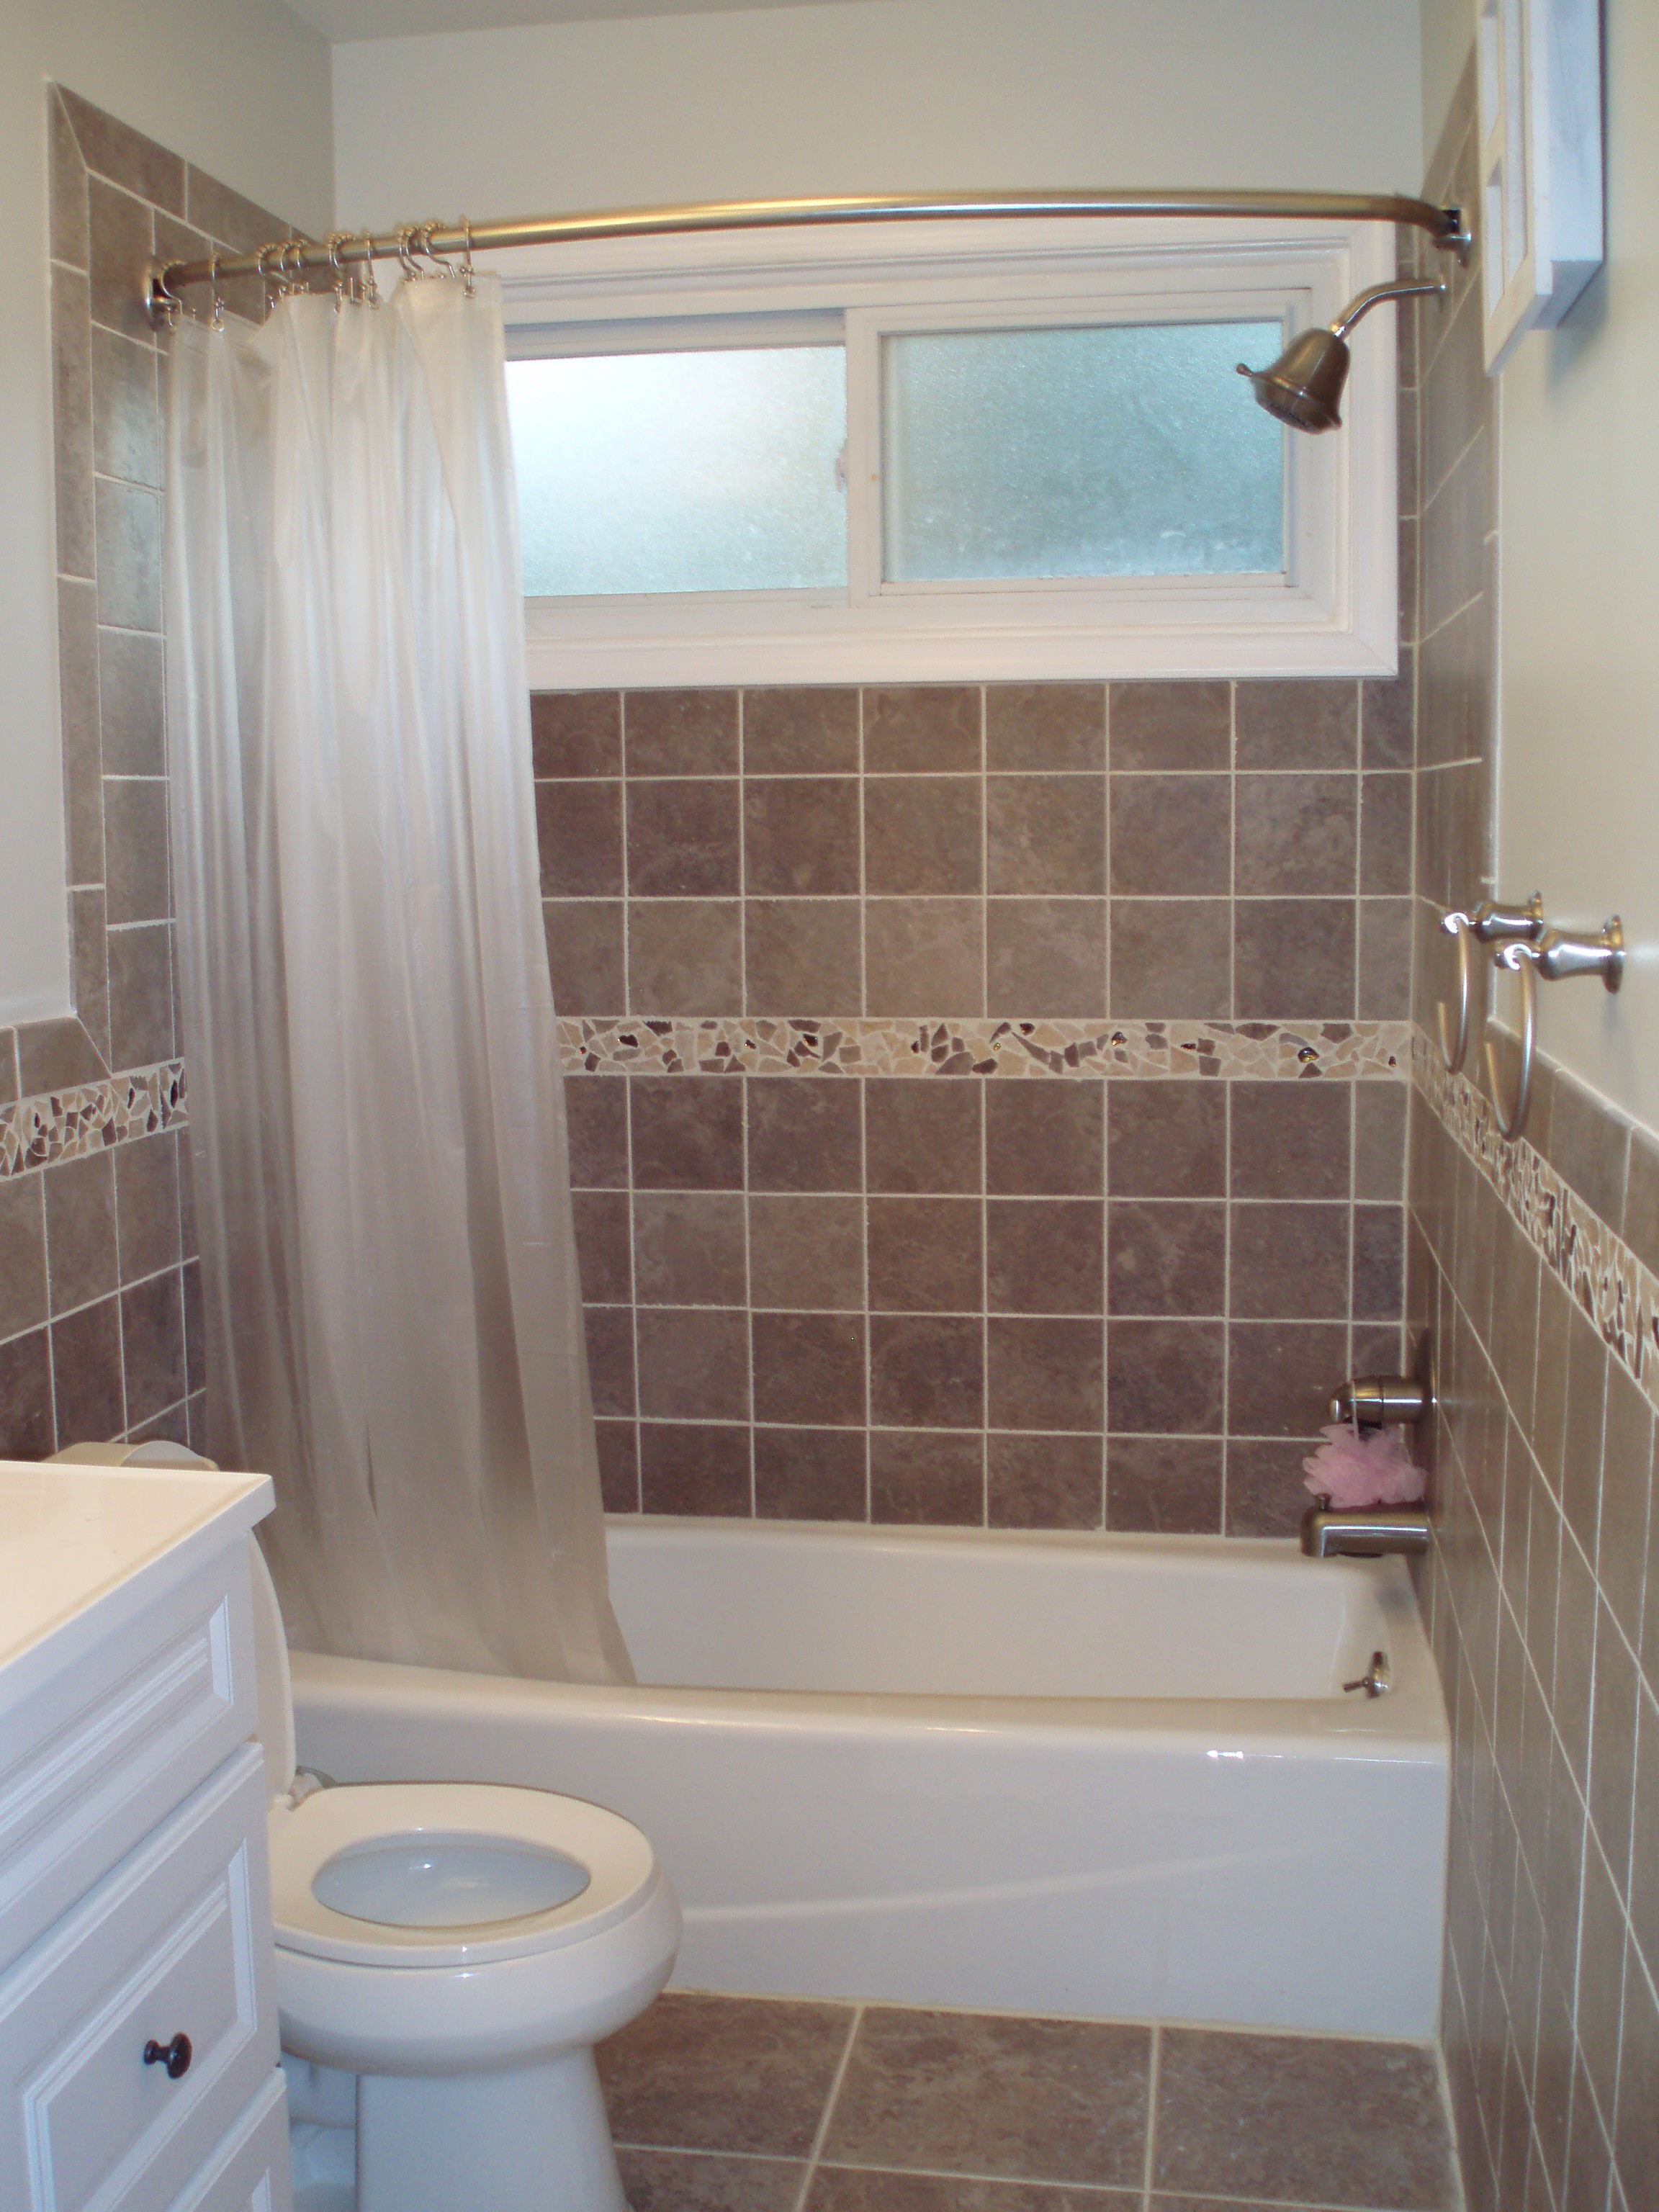 Bathroom plastic curtains - Small Bathroom Interior With Wall Mount Shower Faucet And White Tub Toilet Cabinet